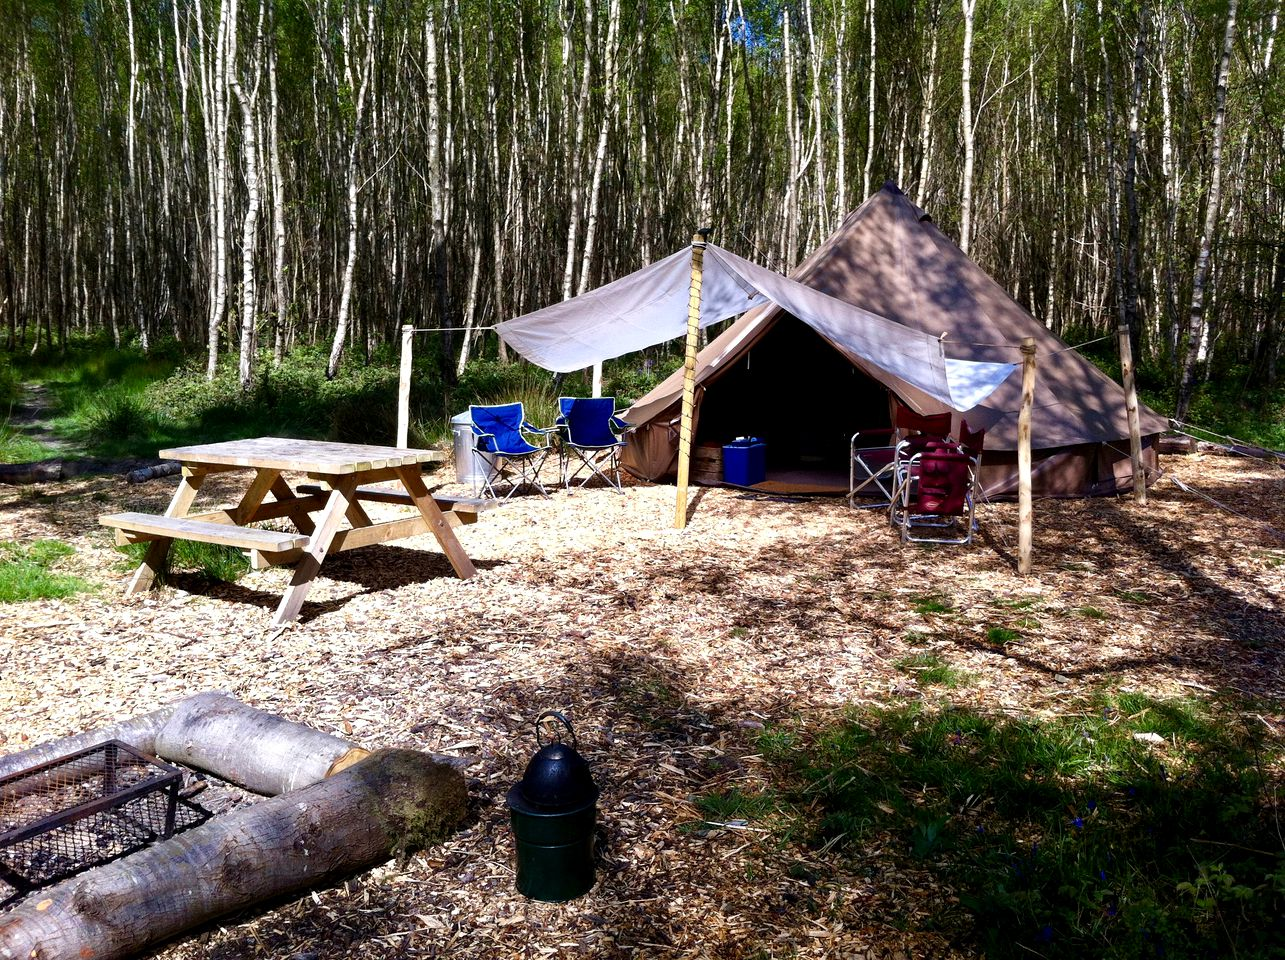 Glamping Sussex: luxury bell tent rentals in woodland campsite